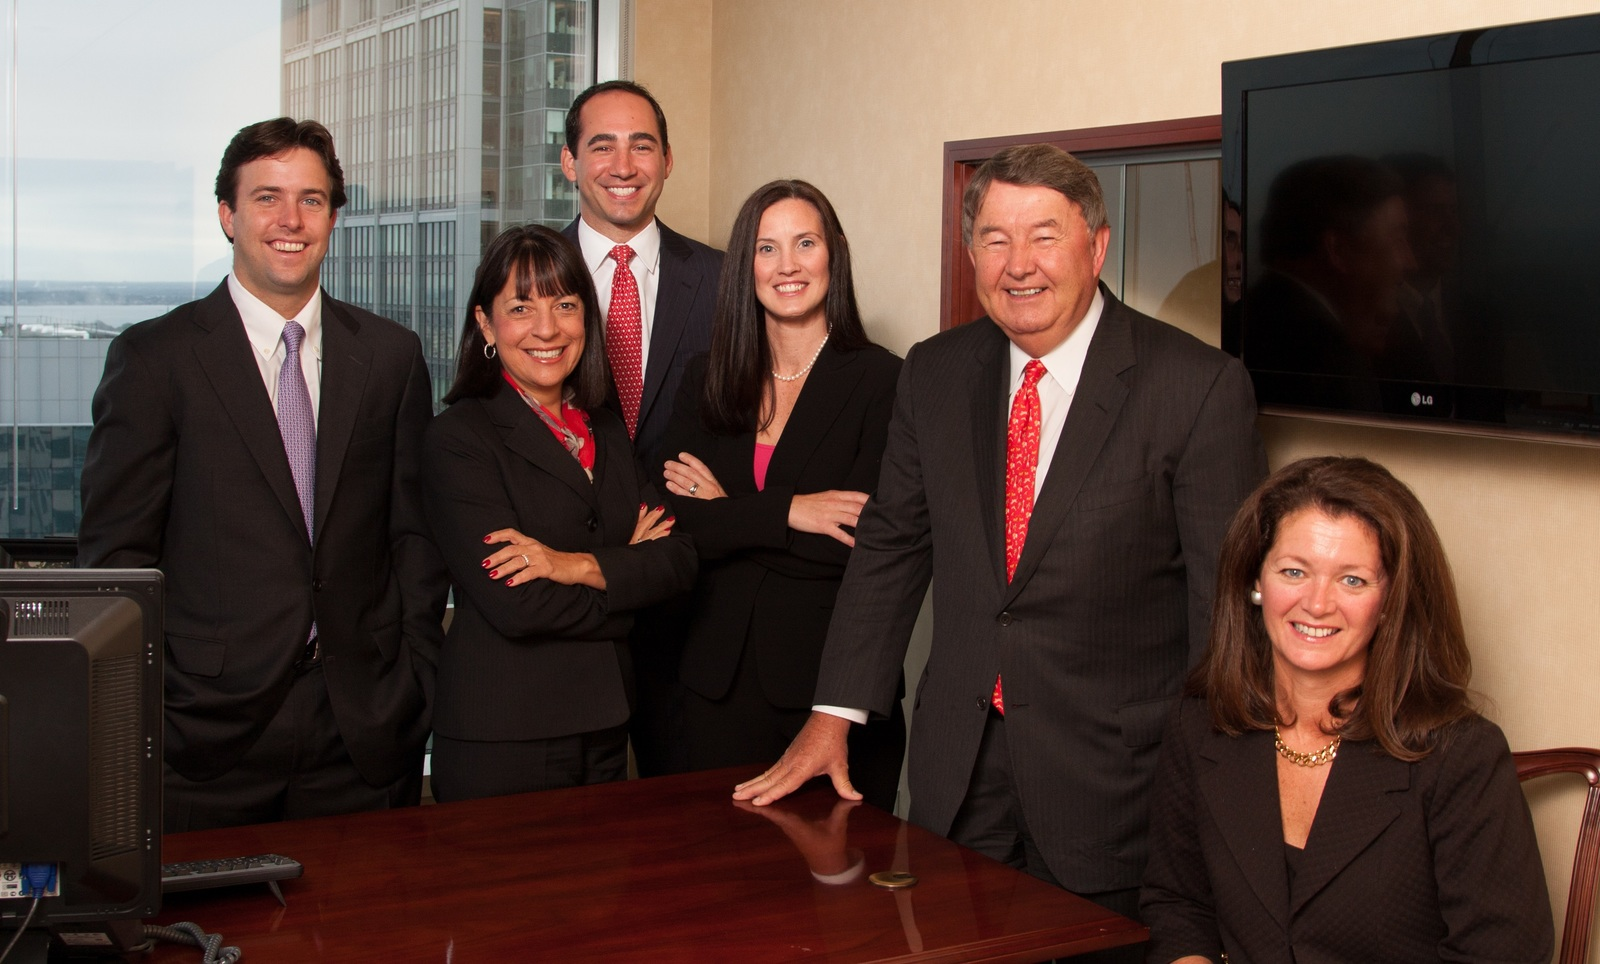 The Connolly Principe Group | Boston, MA | Morgan Stanley Private